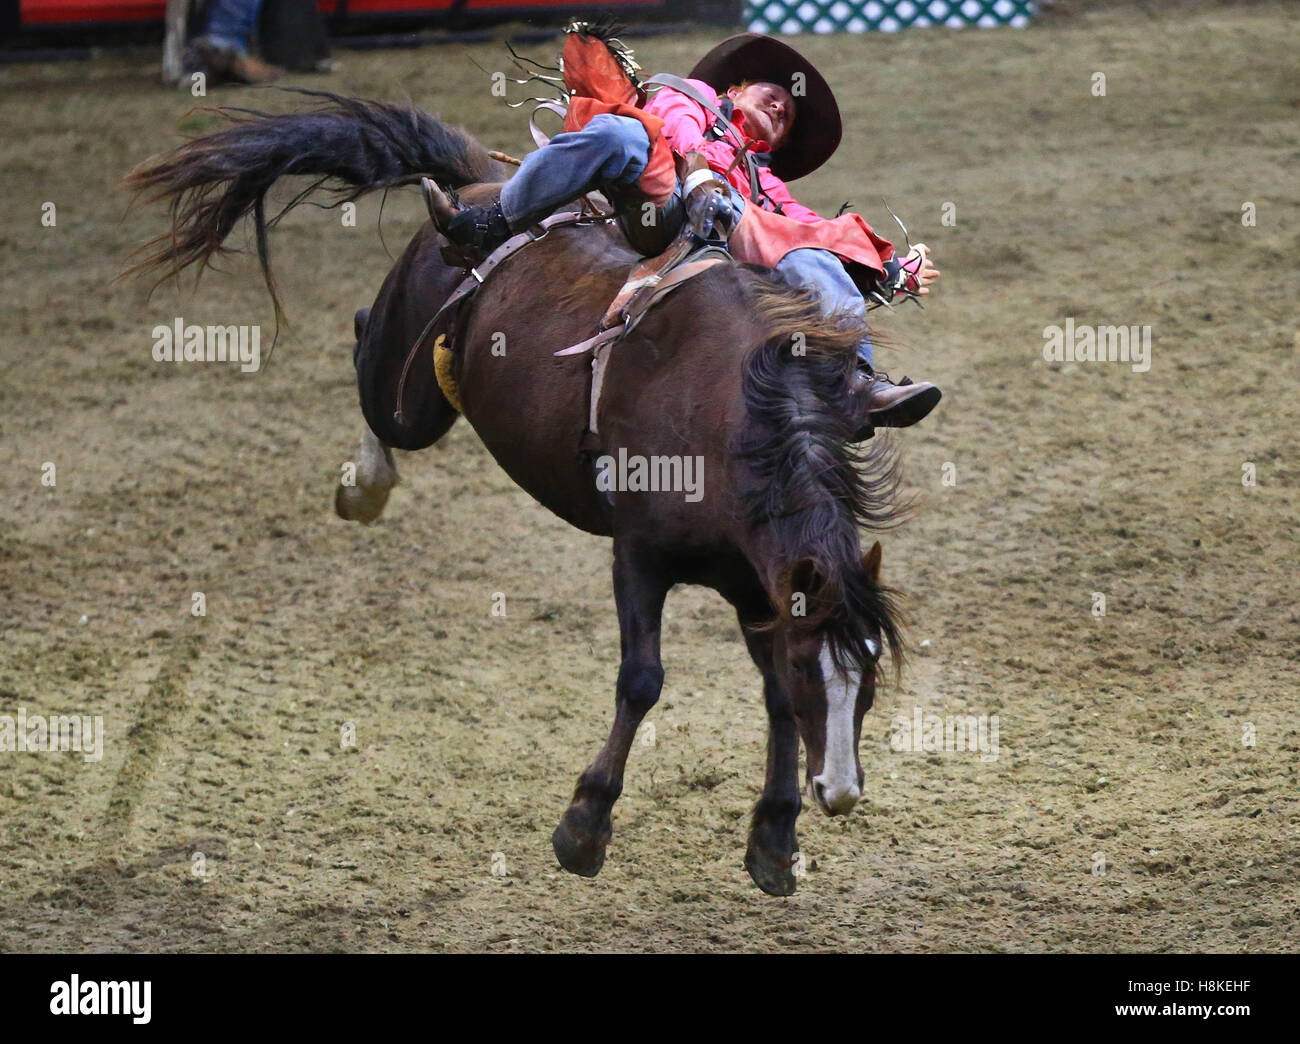 Toronto, Canada. 13th Nov, 2016. A cowboy competes during the Rodeo section of the 2016 Royal Horse Show in Toronto, - Stock Image